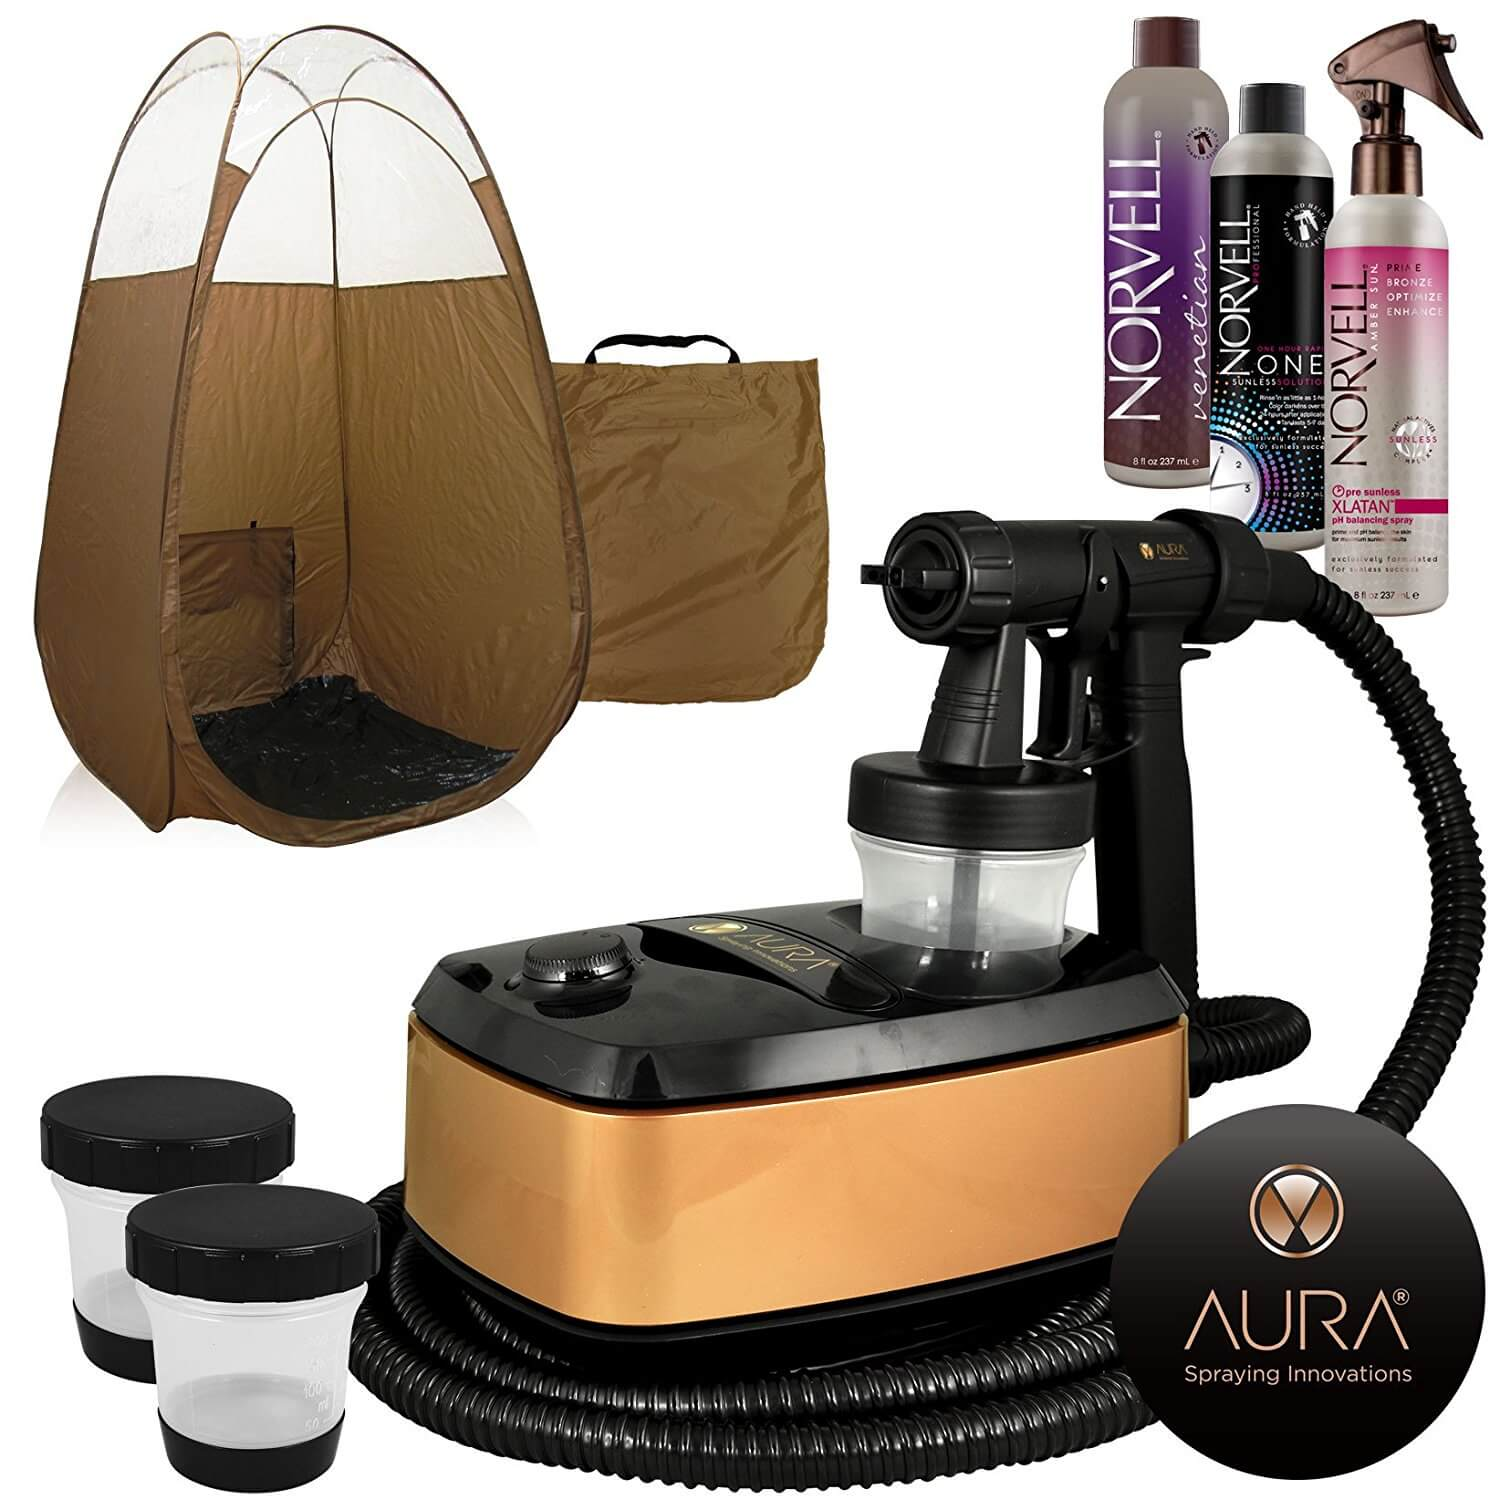 Aura Allure Spray Tan Machine Kit with Norvell Tan Solutions and Bronze Tent